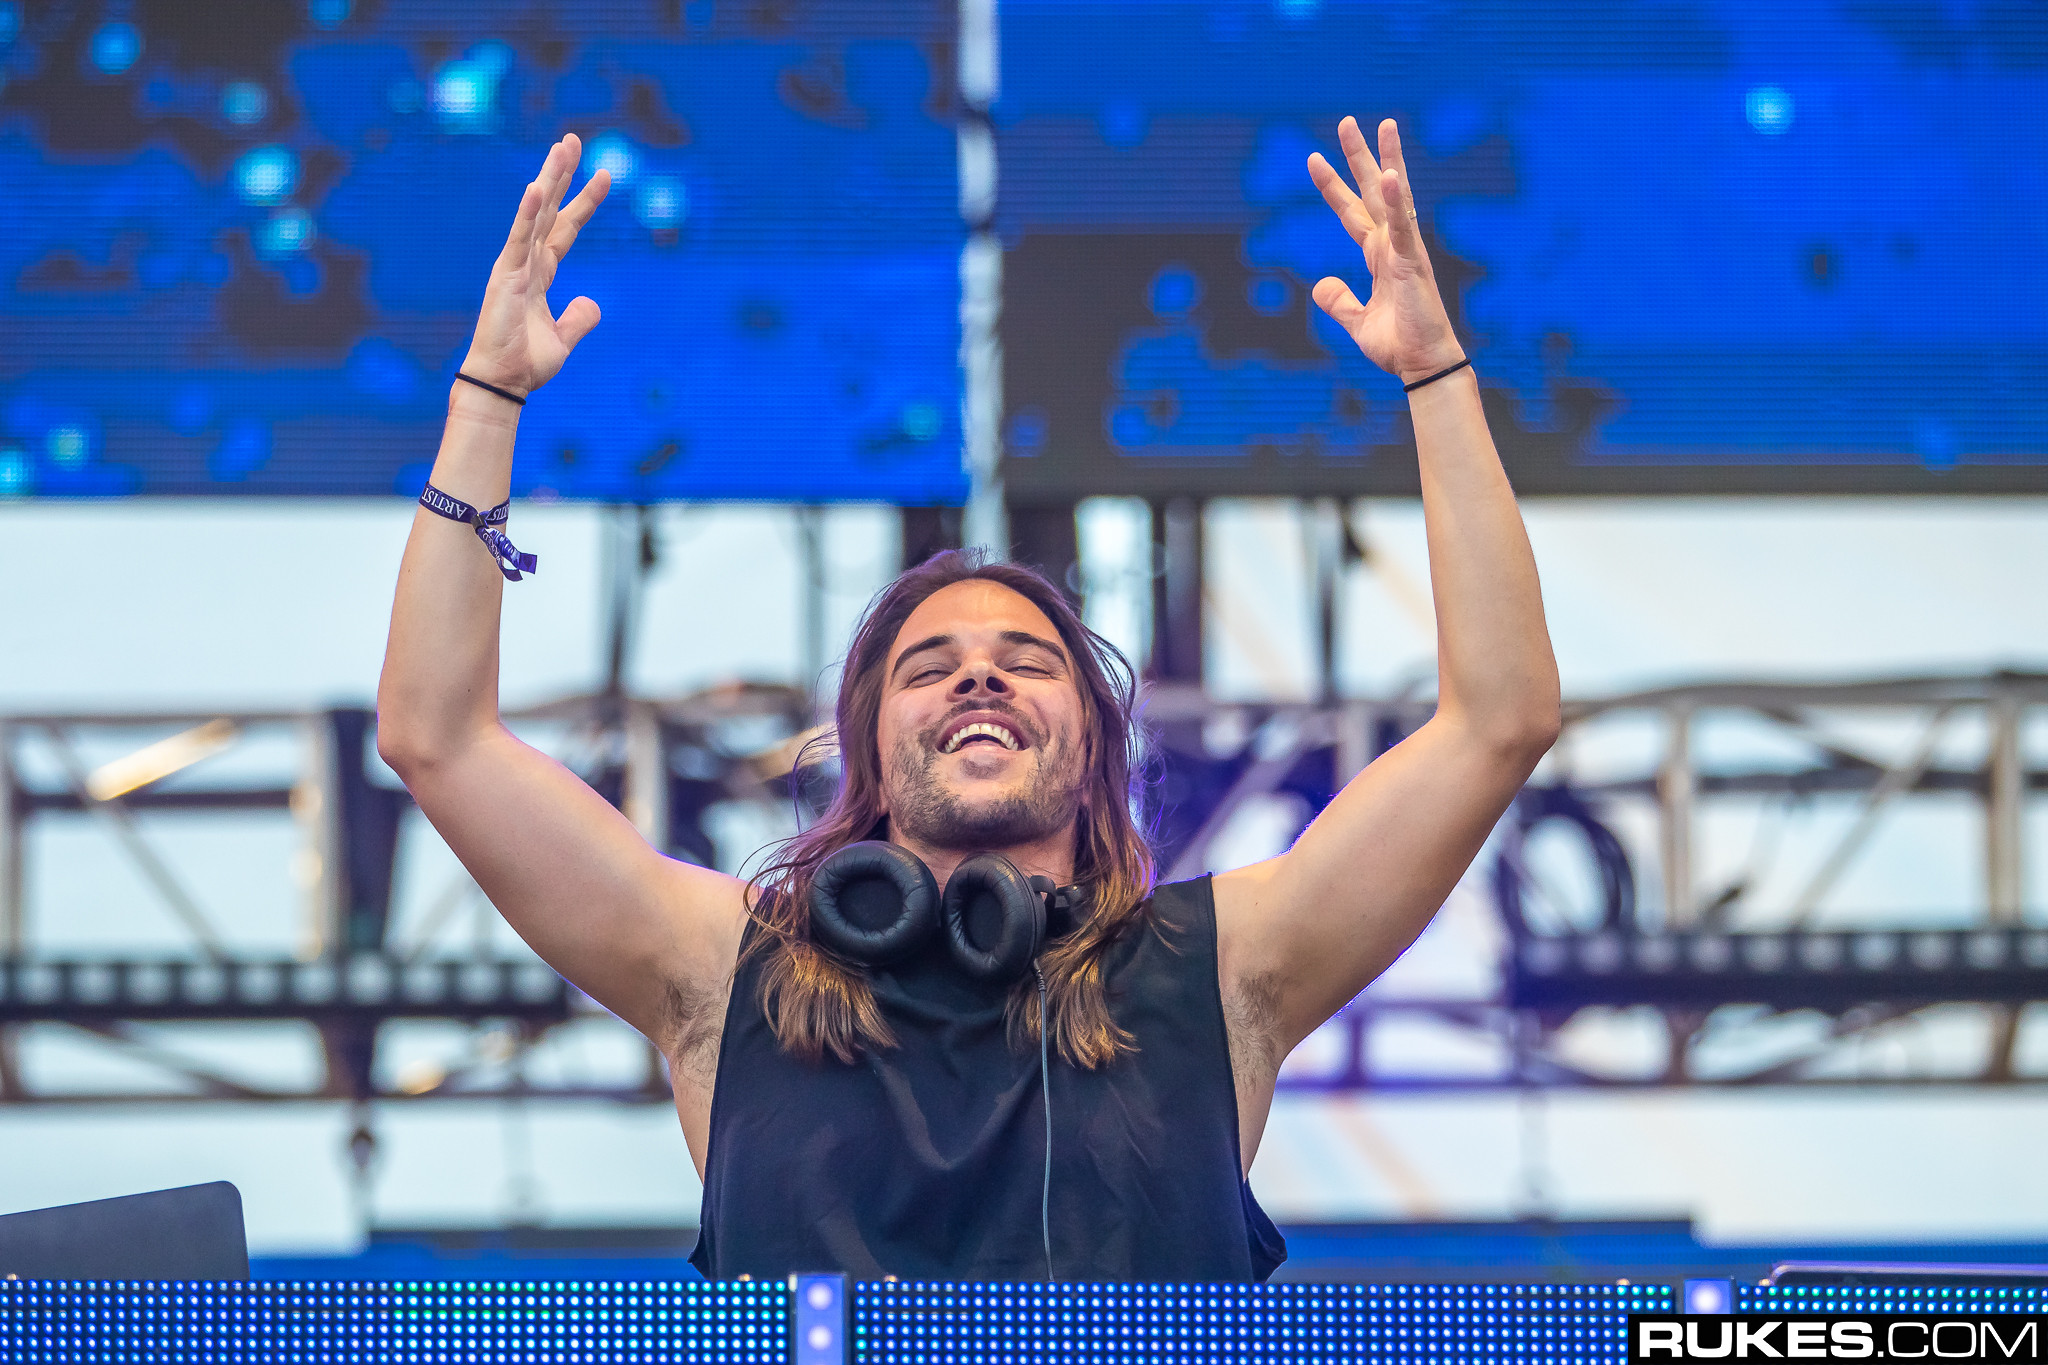 Seven Lions DJs and throws hands up during set LED blue background